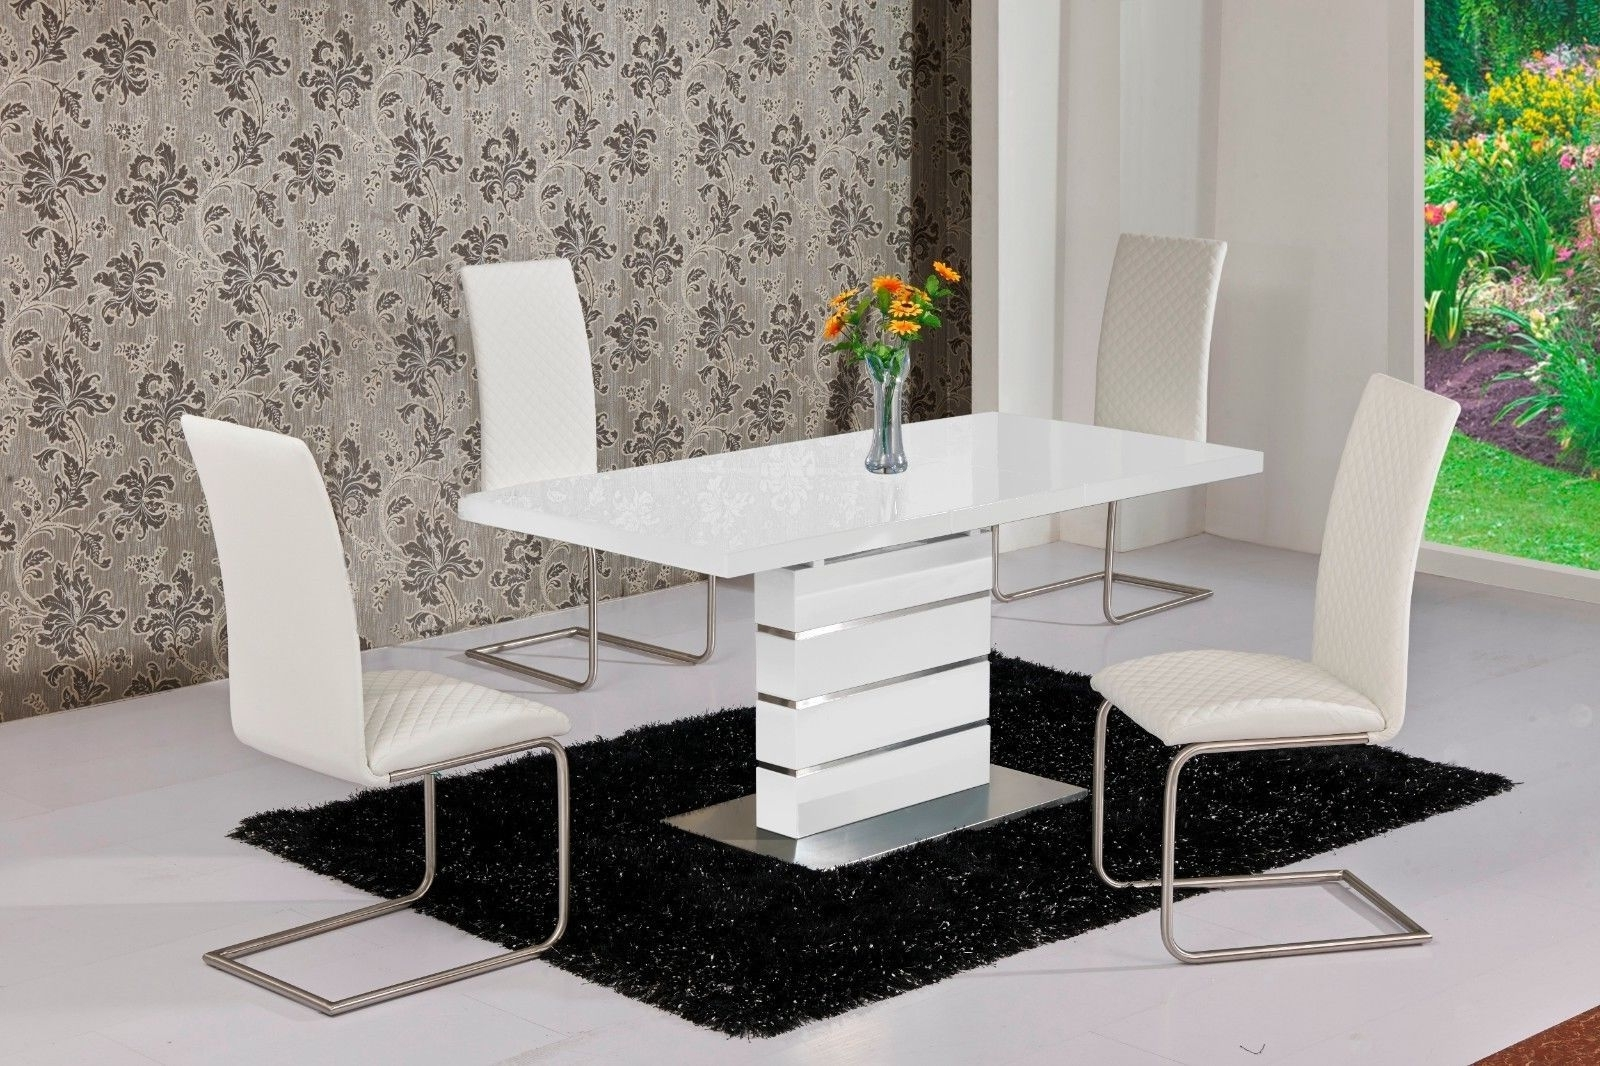 Mace High Gloss Extending 120 160 Dining Table & Chair Set – White Pertaining To Well Known White Dining Tables And 6 Chairs (View 10 of 25)